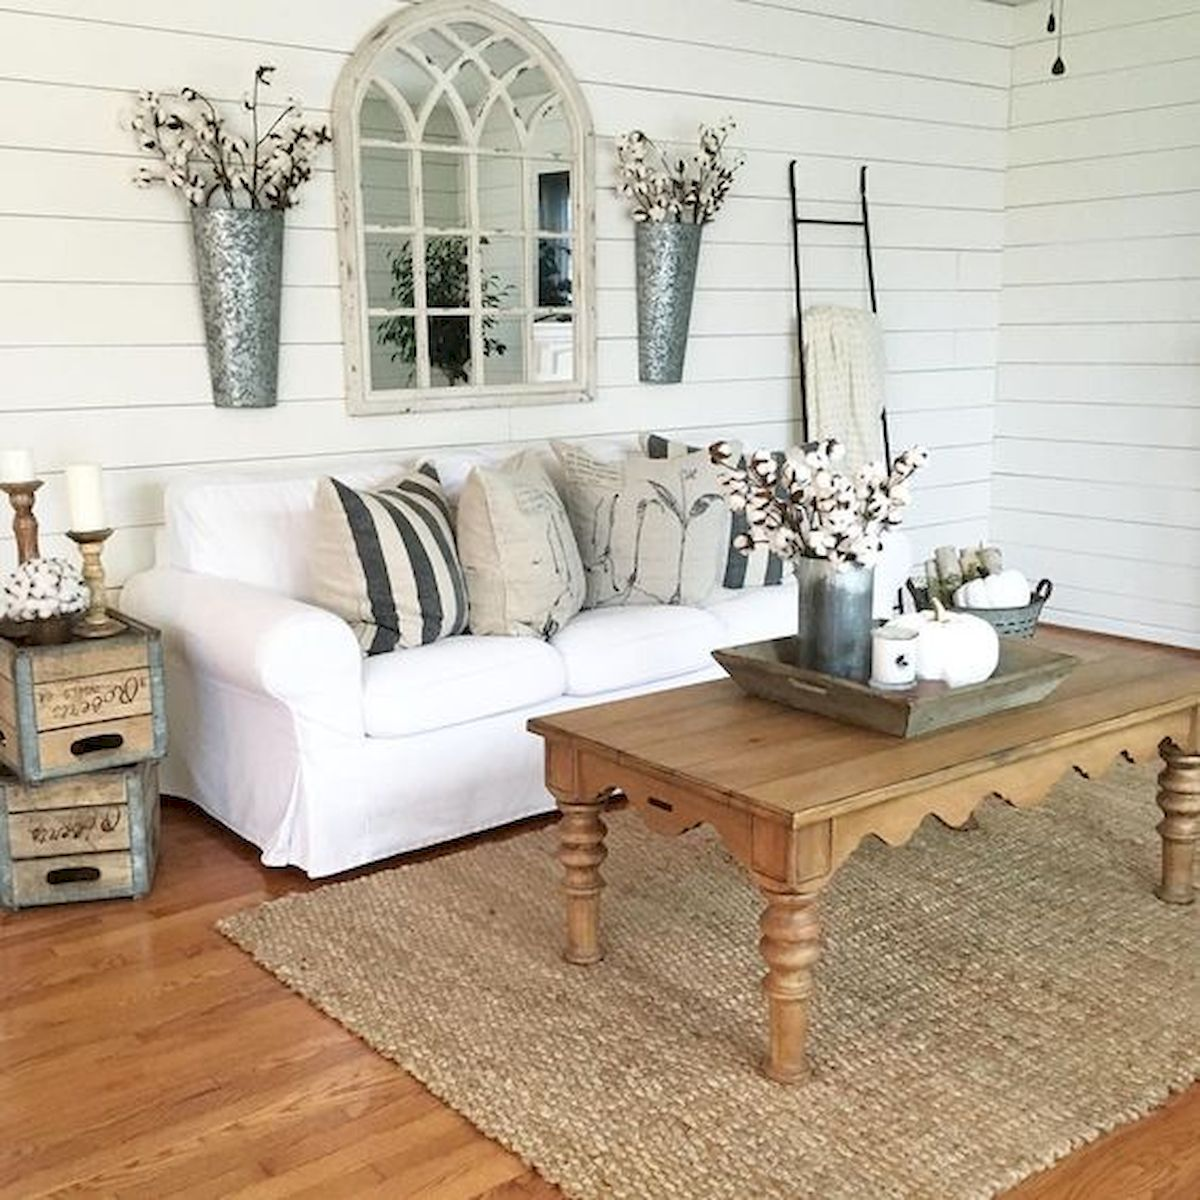 50 Cozy Farmhouse Living Room Design and Decor Ideas (5)